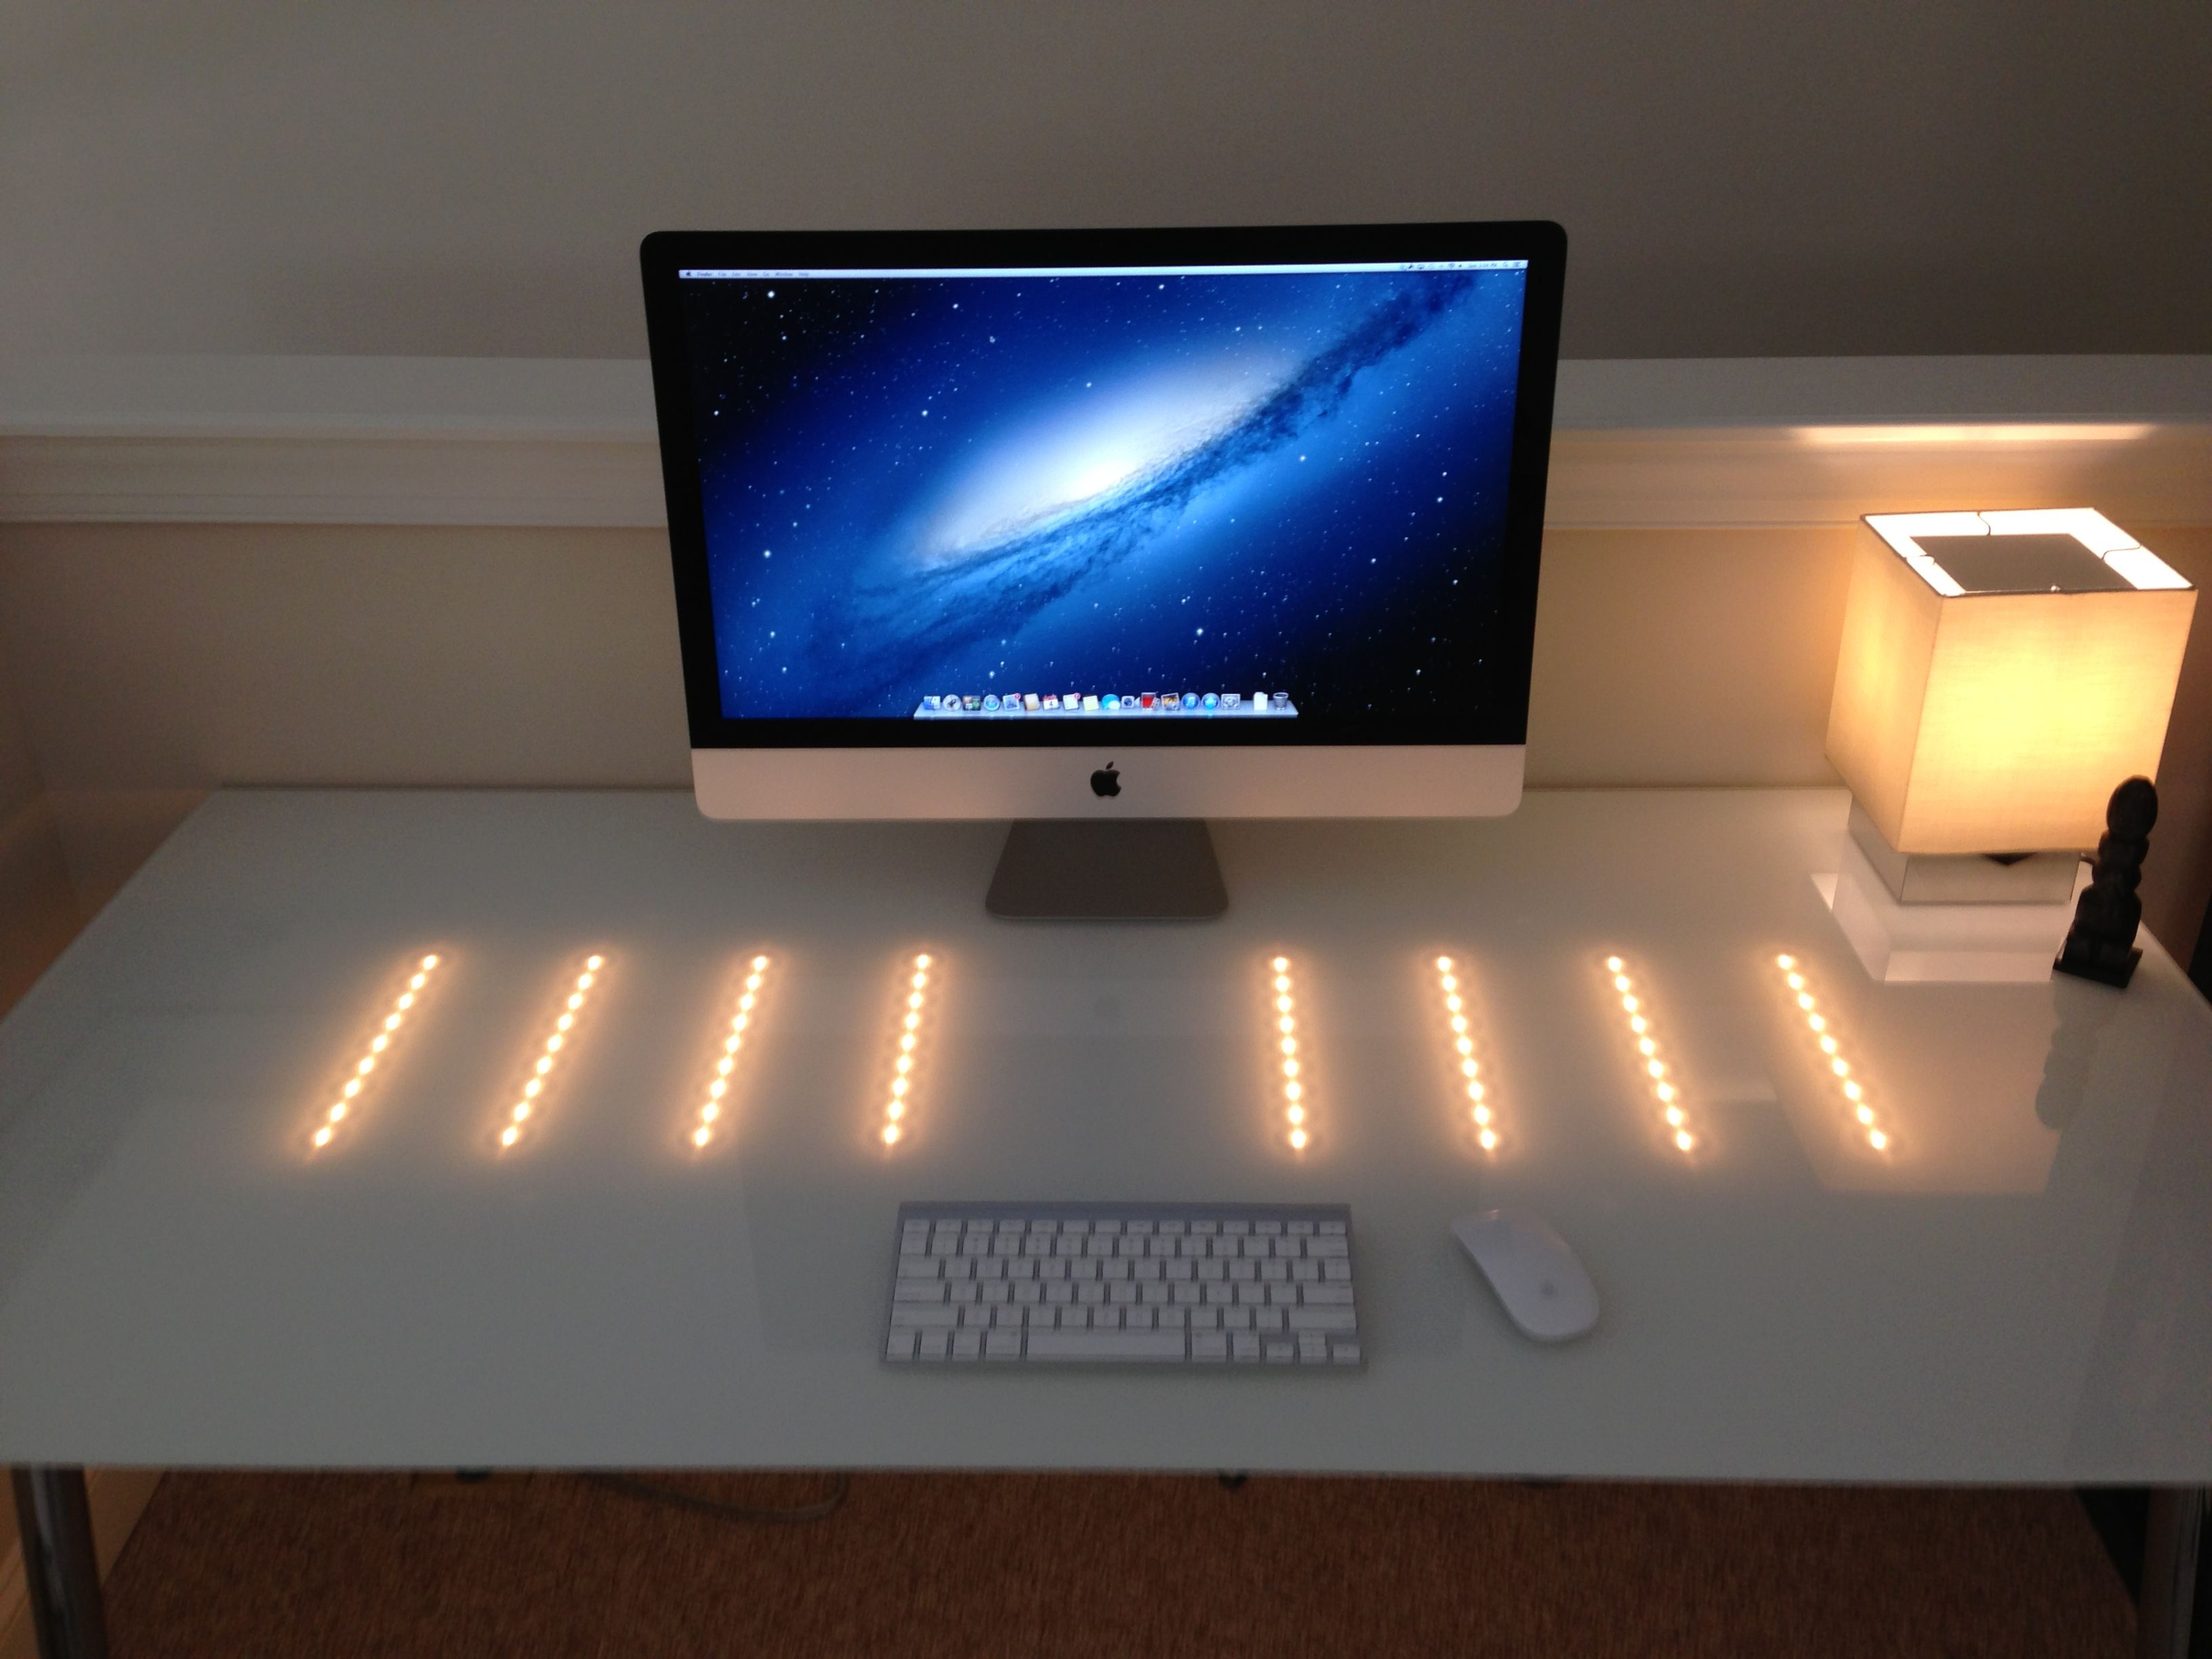 27 imac ikea galant white glass desk led track lighting office 27 imac ikea galant white glass desk led track lighting aloadofball Images